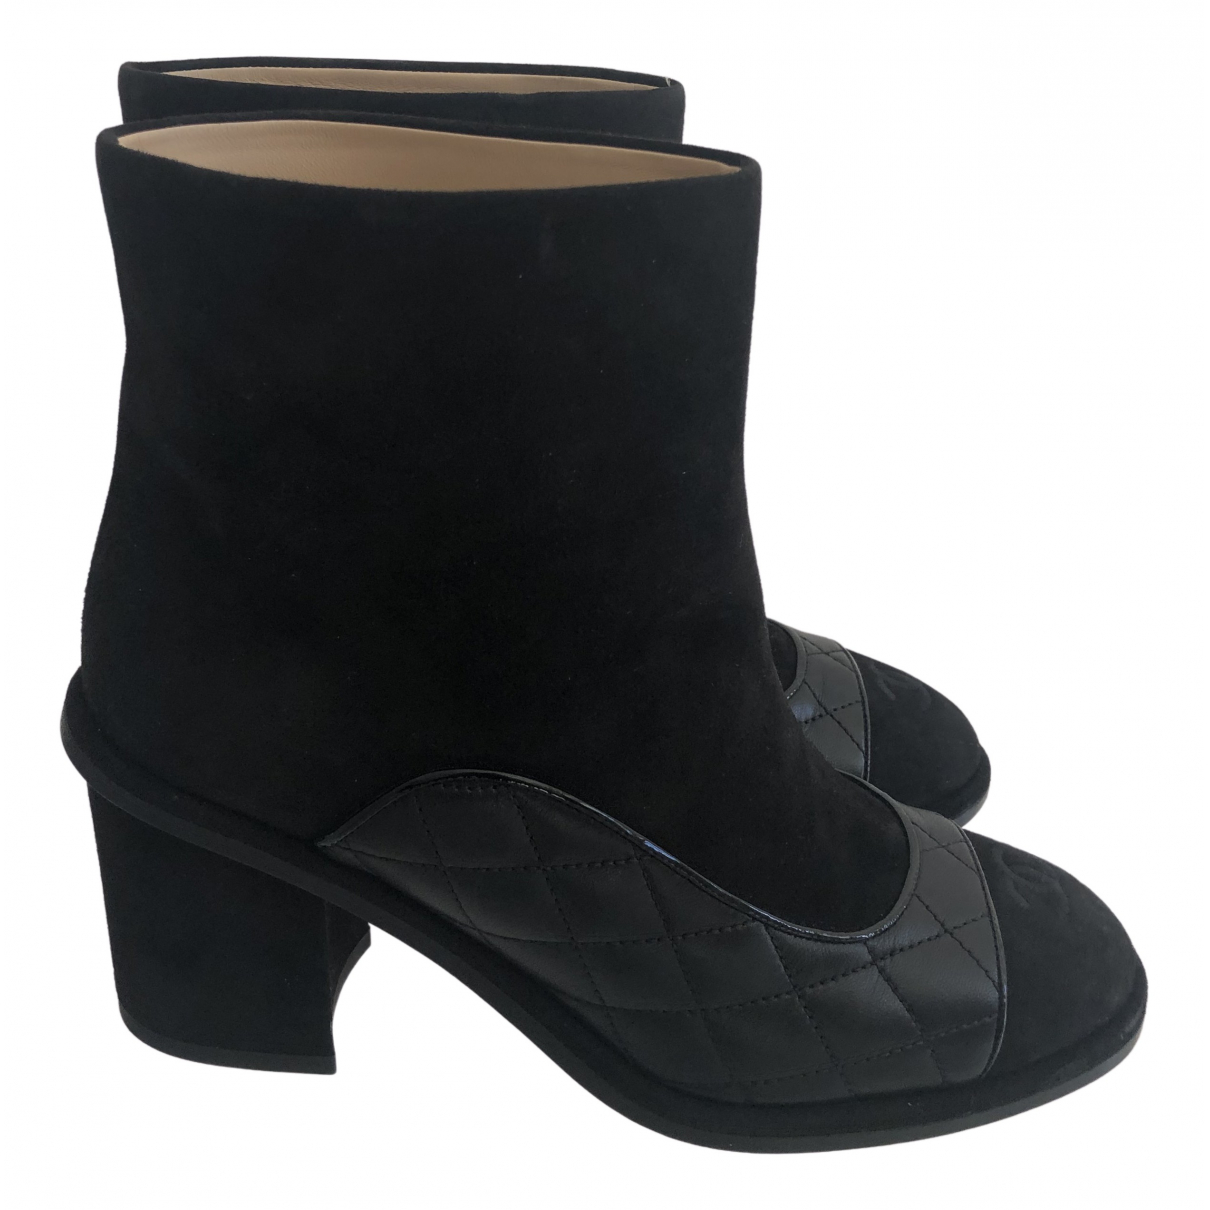 Chanel N Black Suede Boots for Women 37 EU